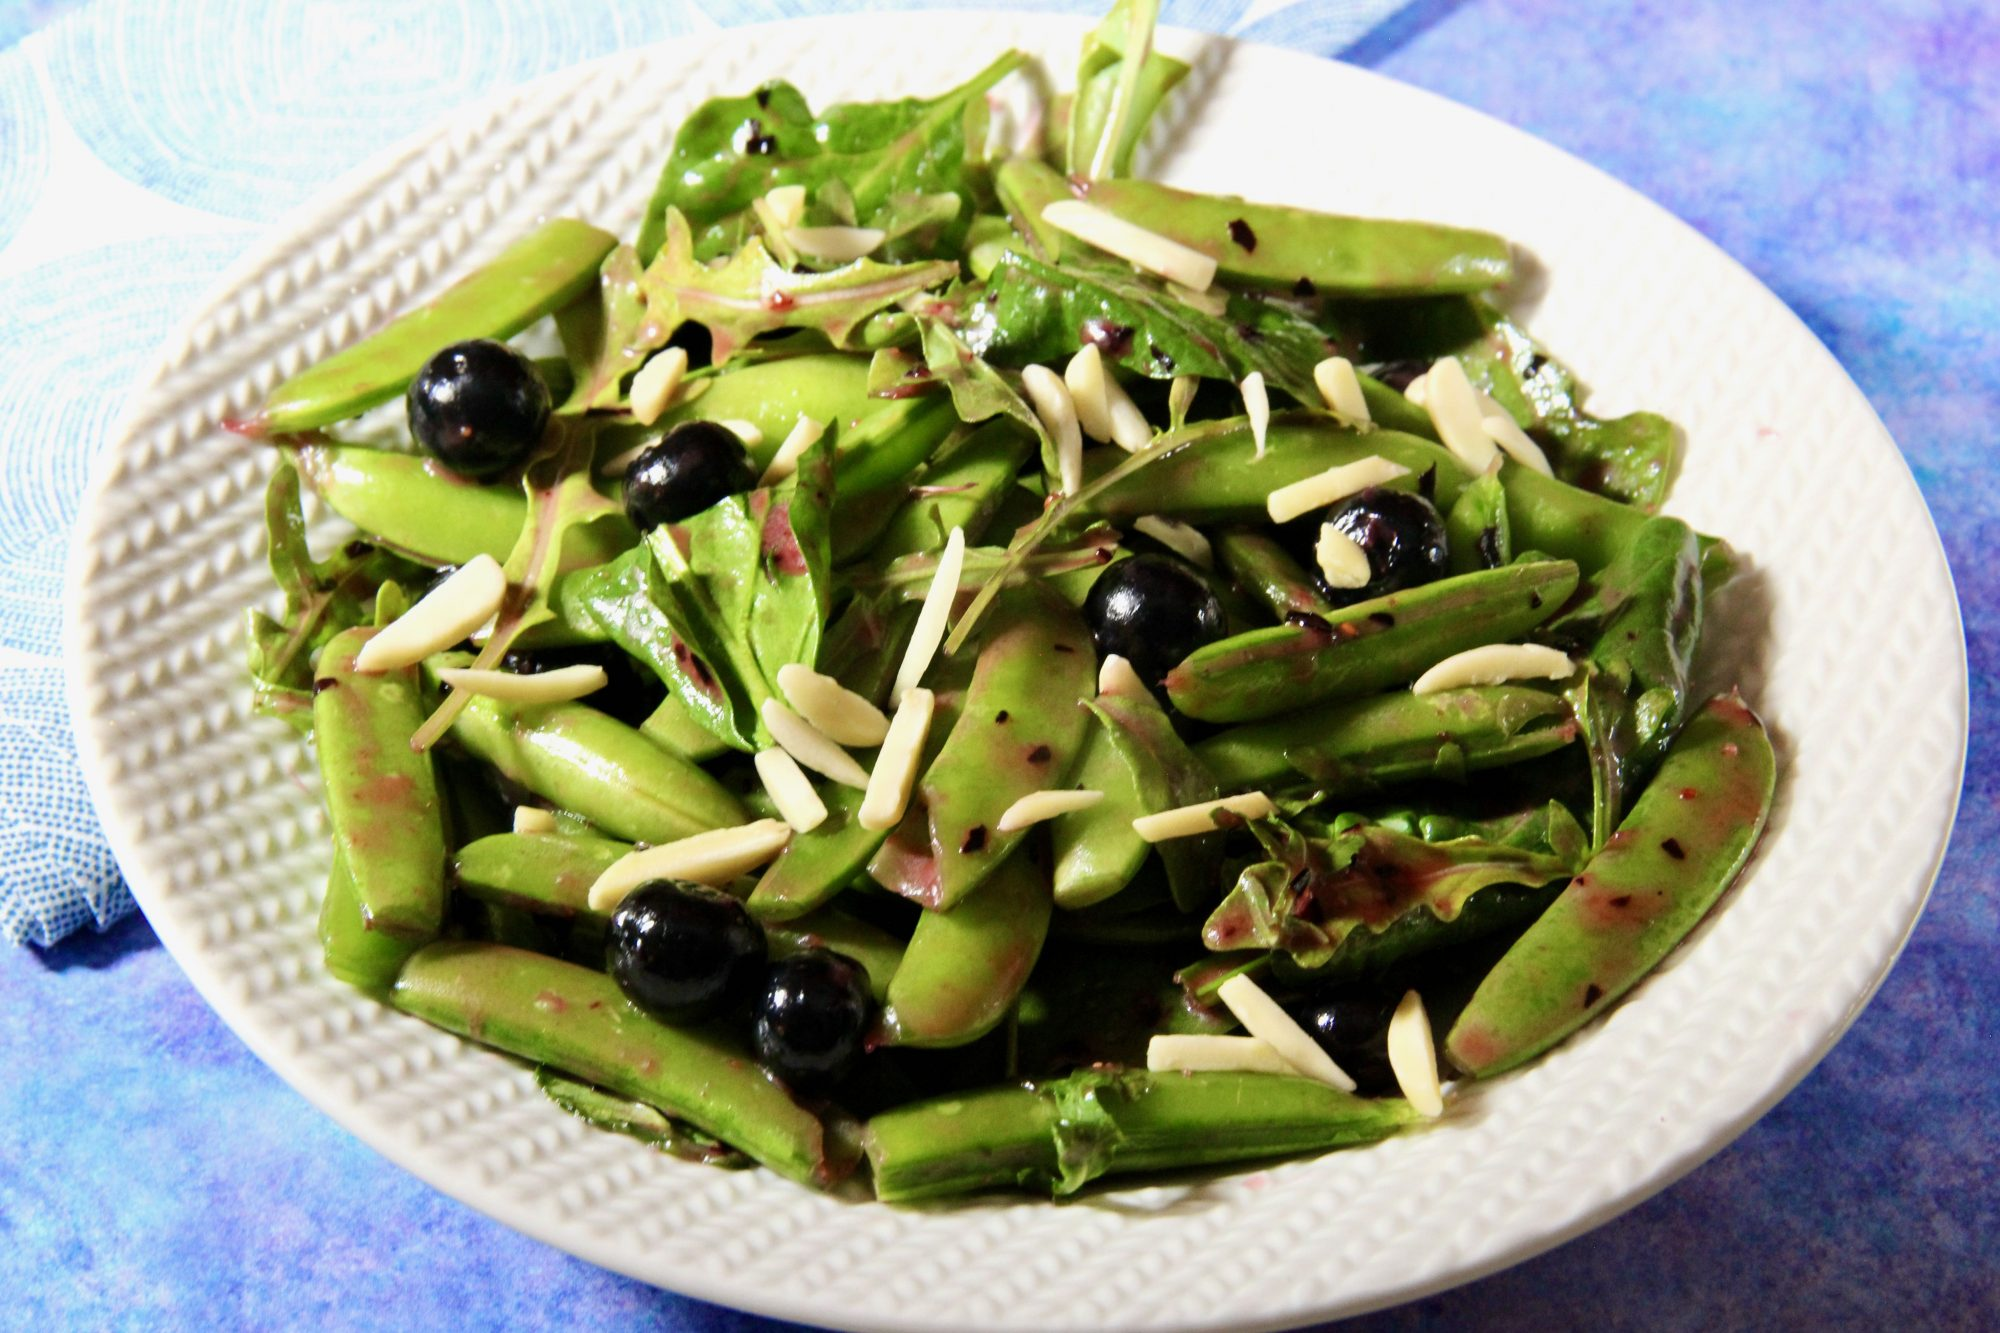 bowl of sugar snap peas, blueberries, and slivered almonds